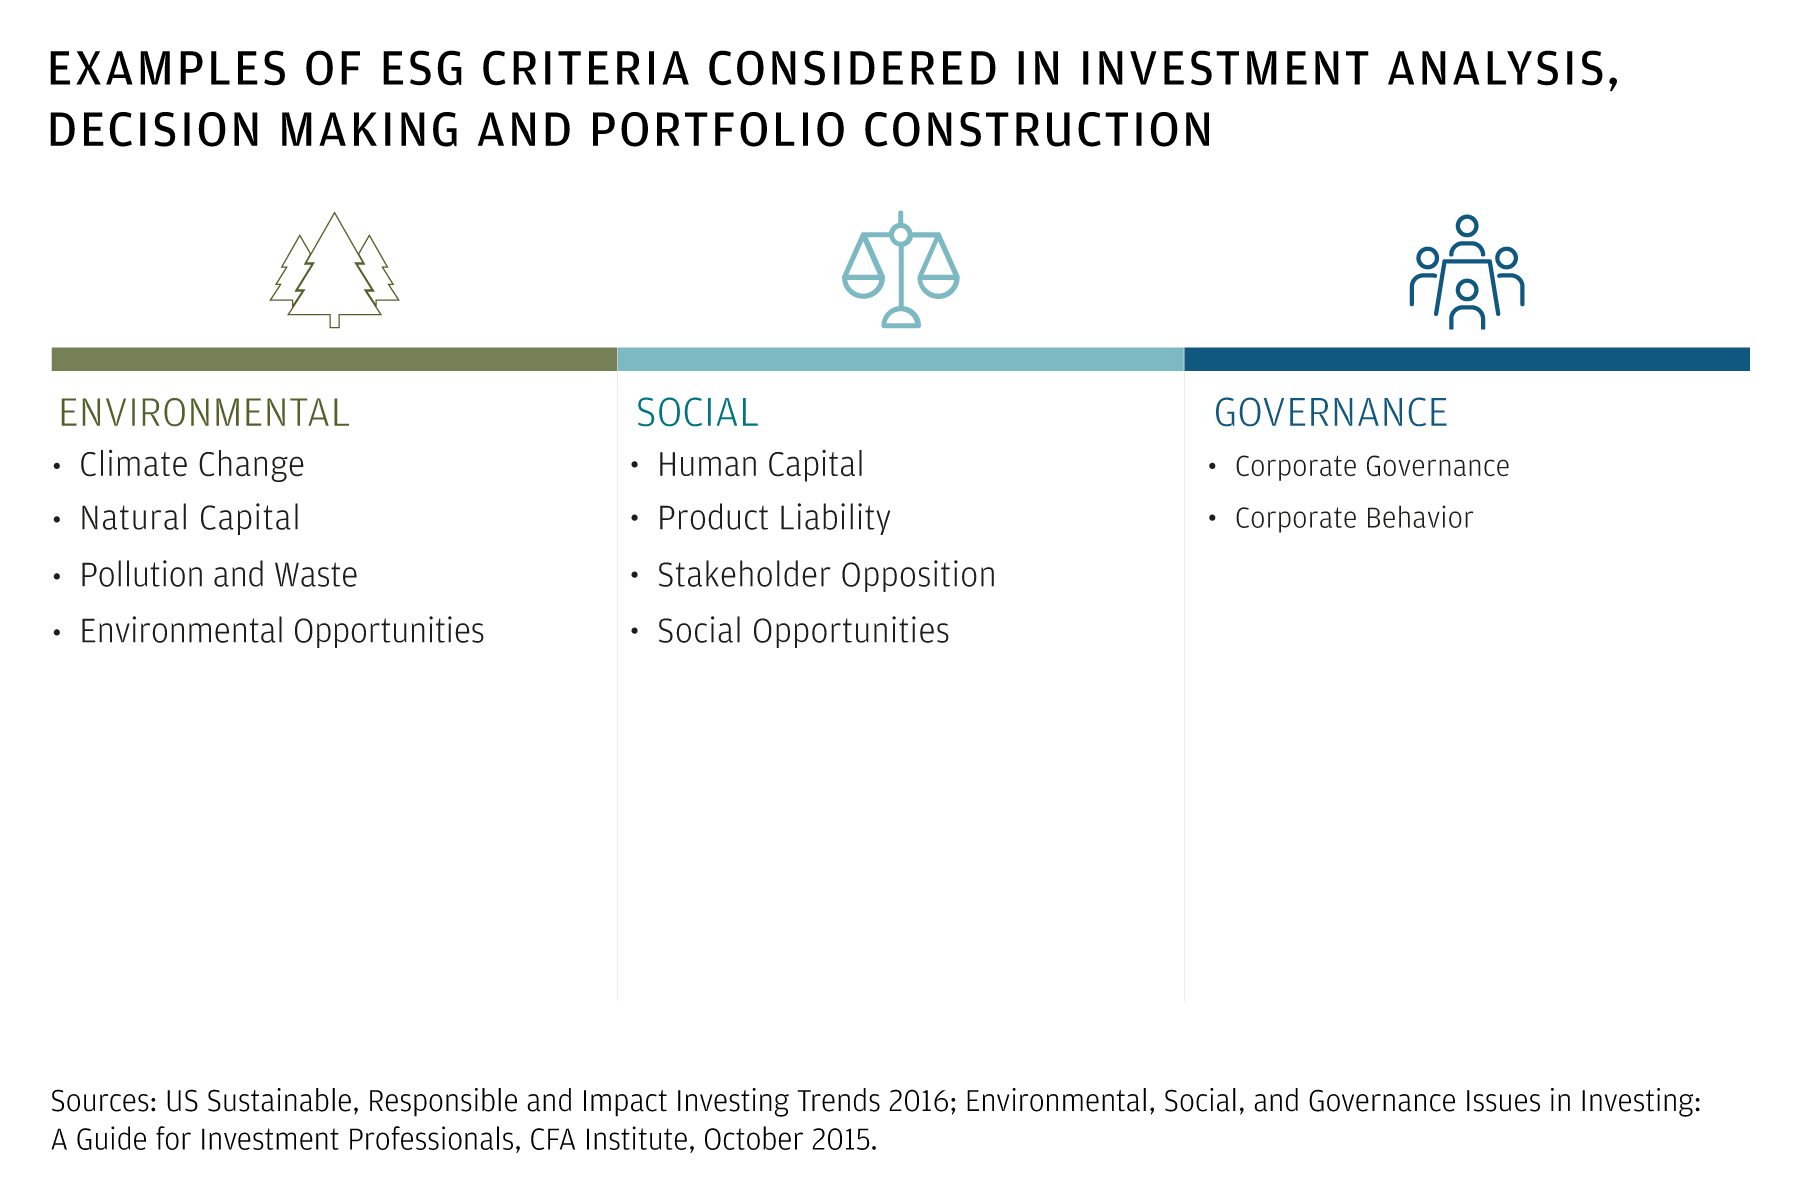 Aligning your social goals and your investments